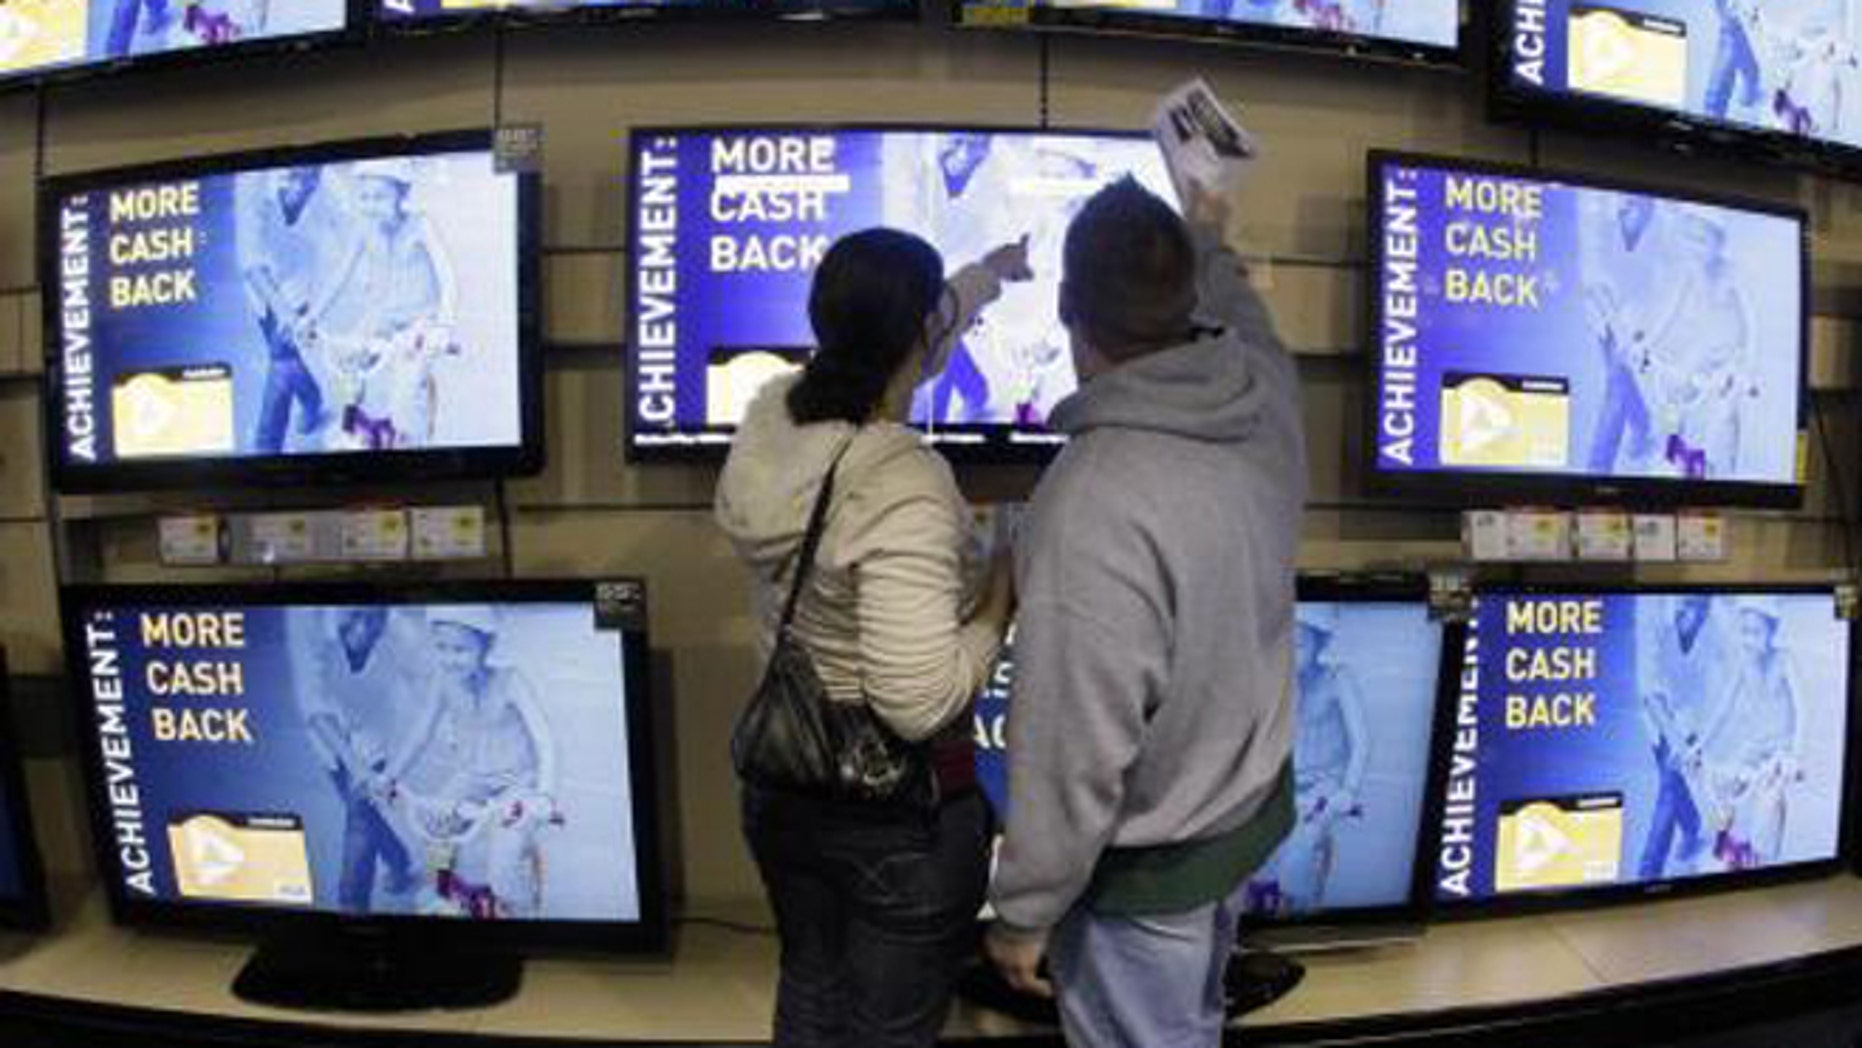 Consumers shop for TVs at a Best Buy store in Brentwood, Tenn. But will they buy in the store -- or online, where they may find a bargain?